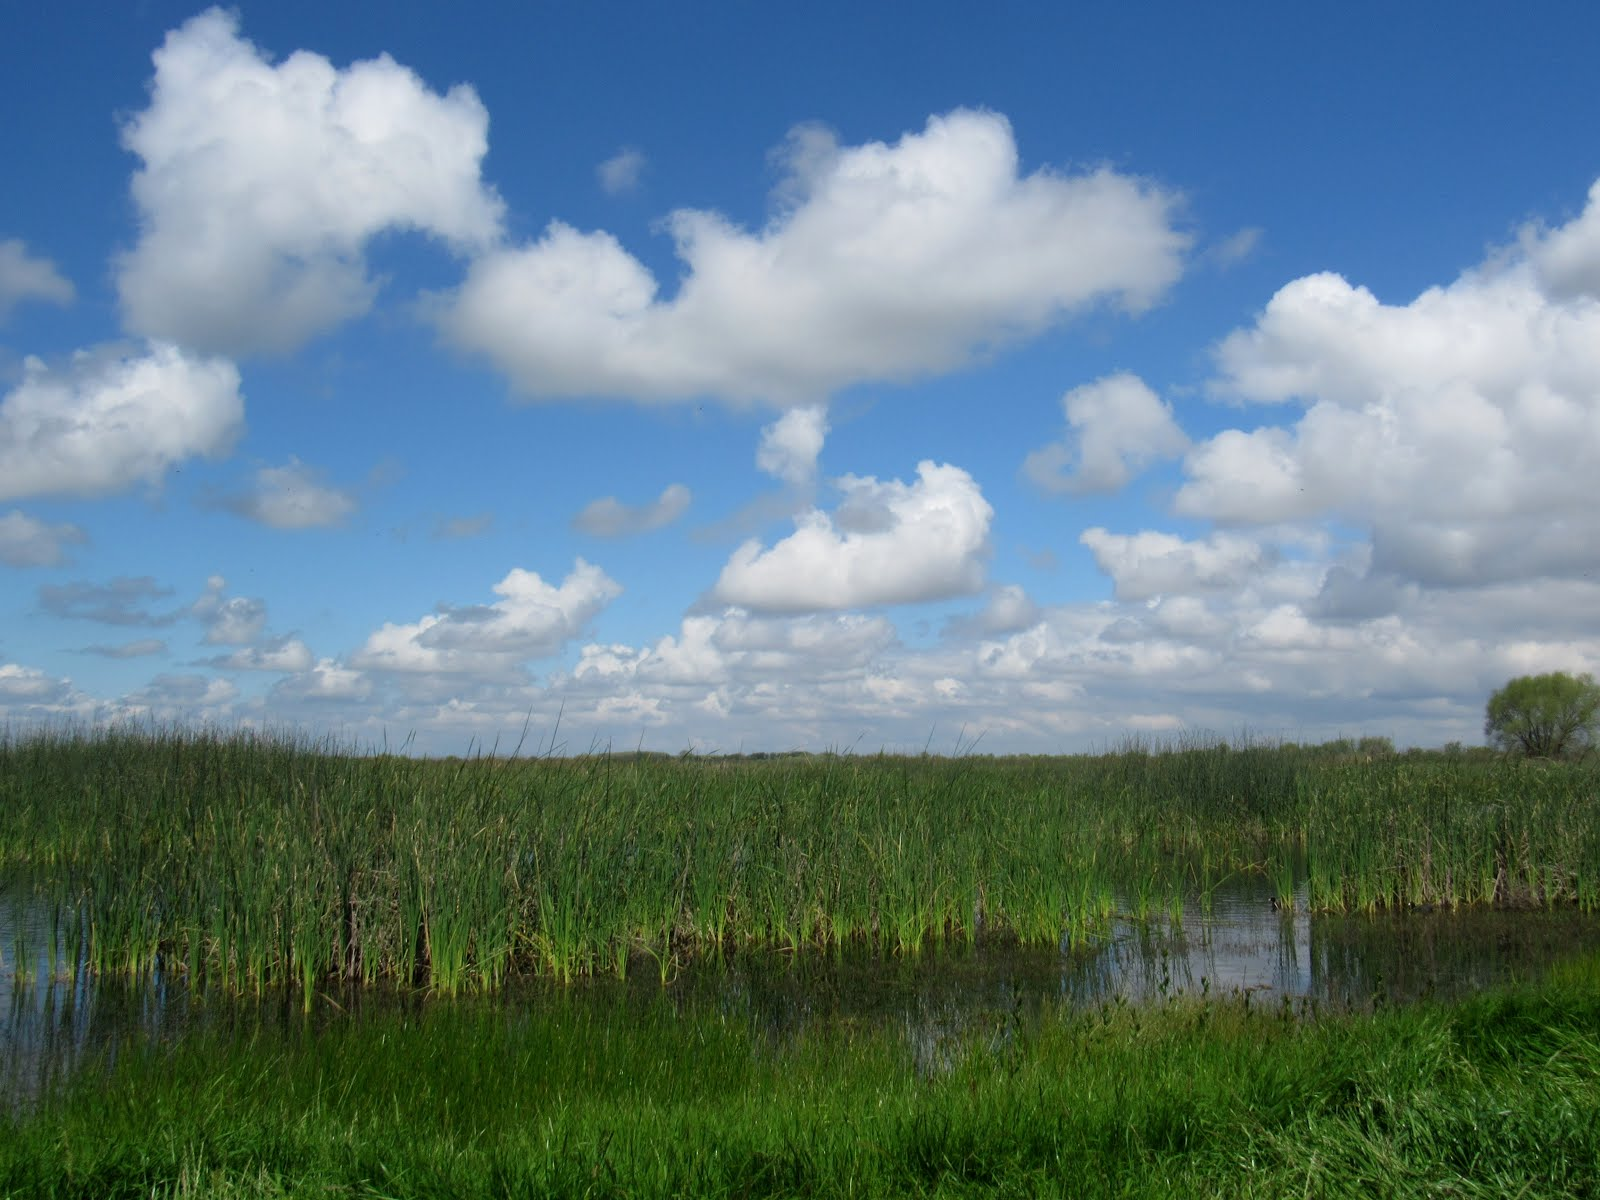 Ode To The Wetland: More Than Just A Marsh